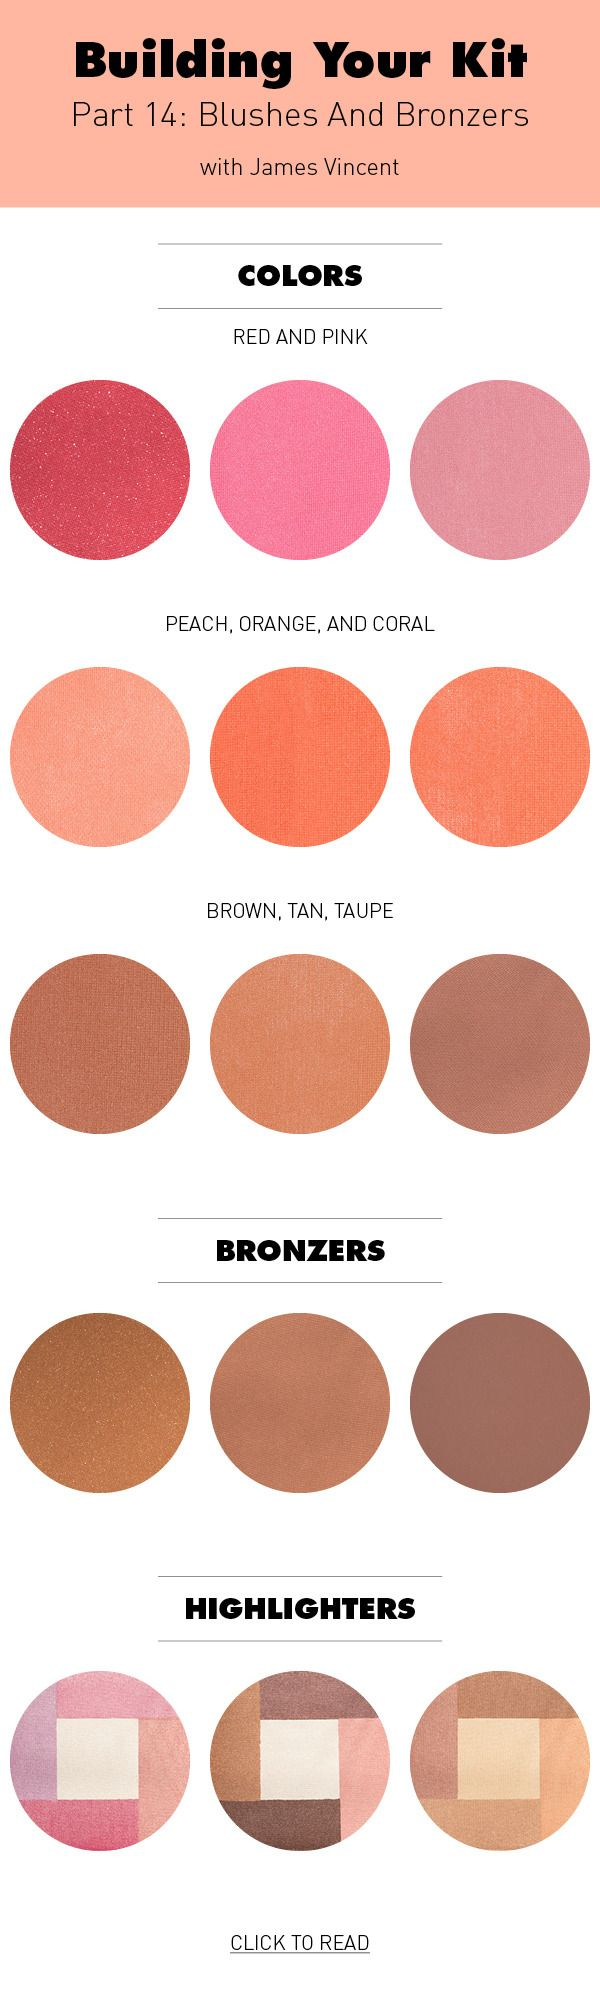 Building Your Kit Part 14: How To Pick Blushes And Bronzers ...my latest piece for Beautylish